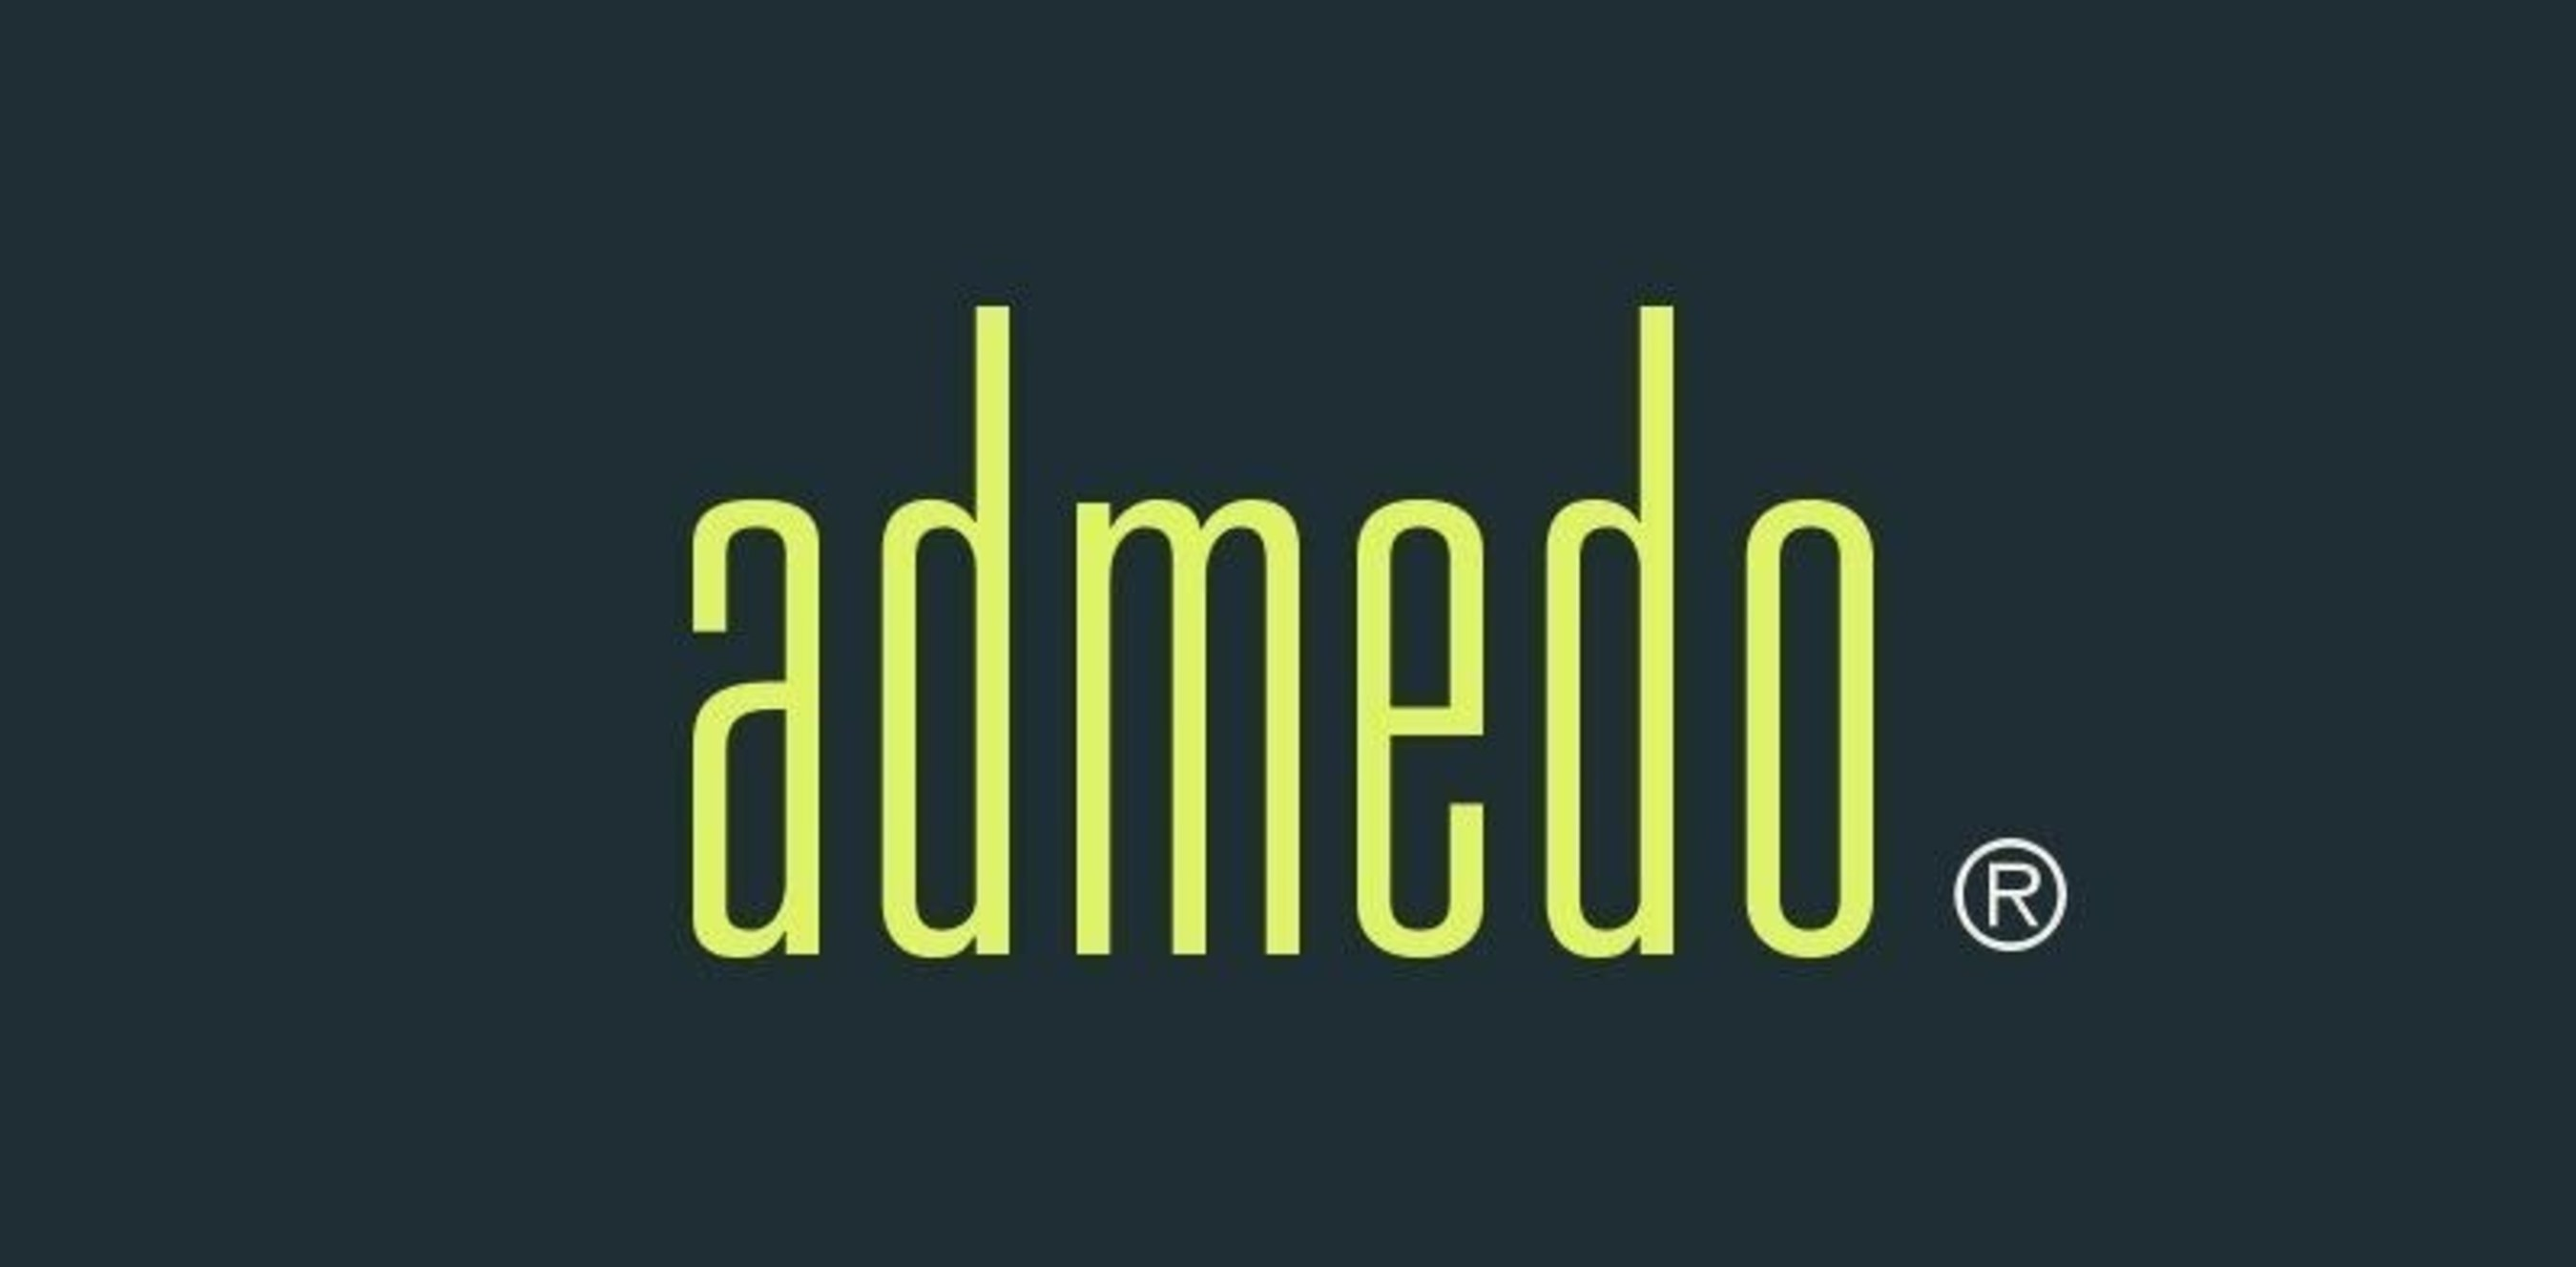 Admedo Launches Oracle Marketing AppCloud Application to Offer Programmatic Advertising Platform